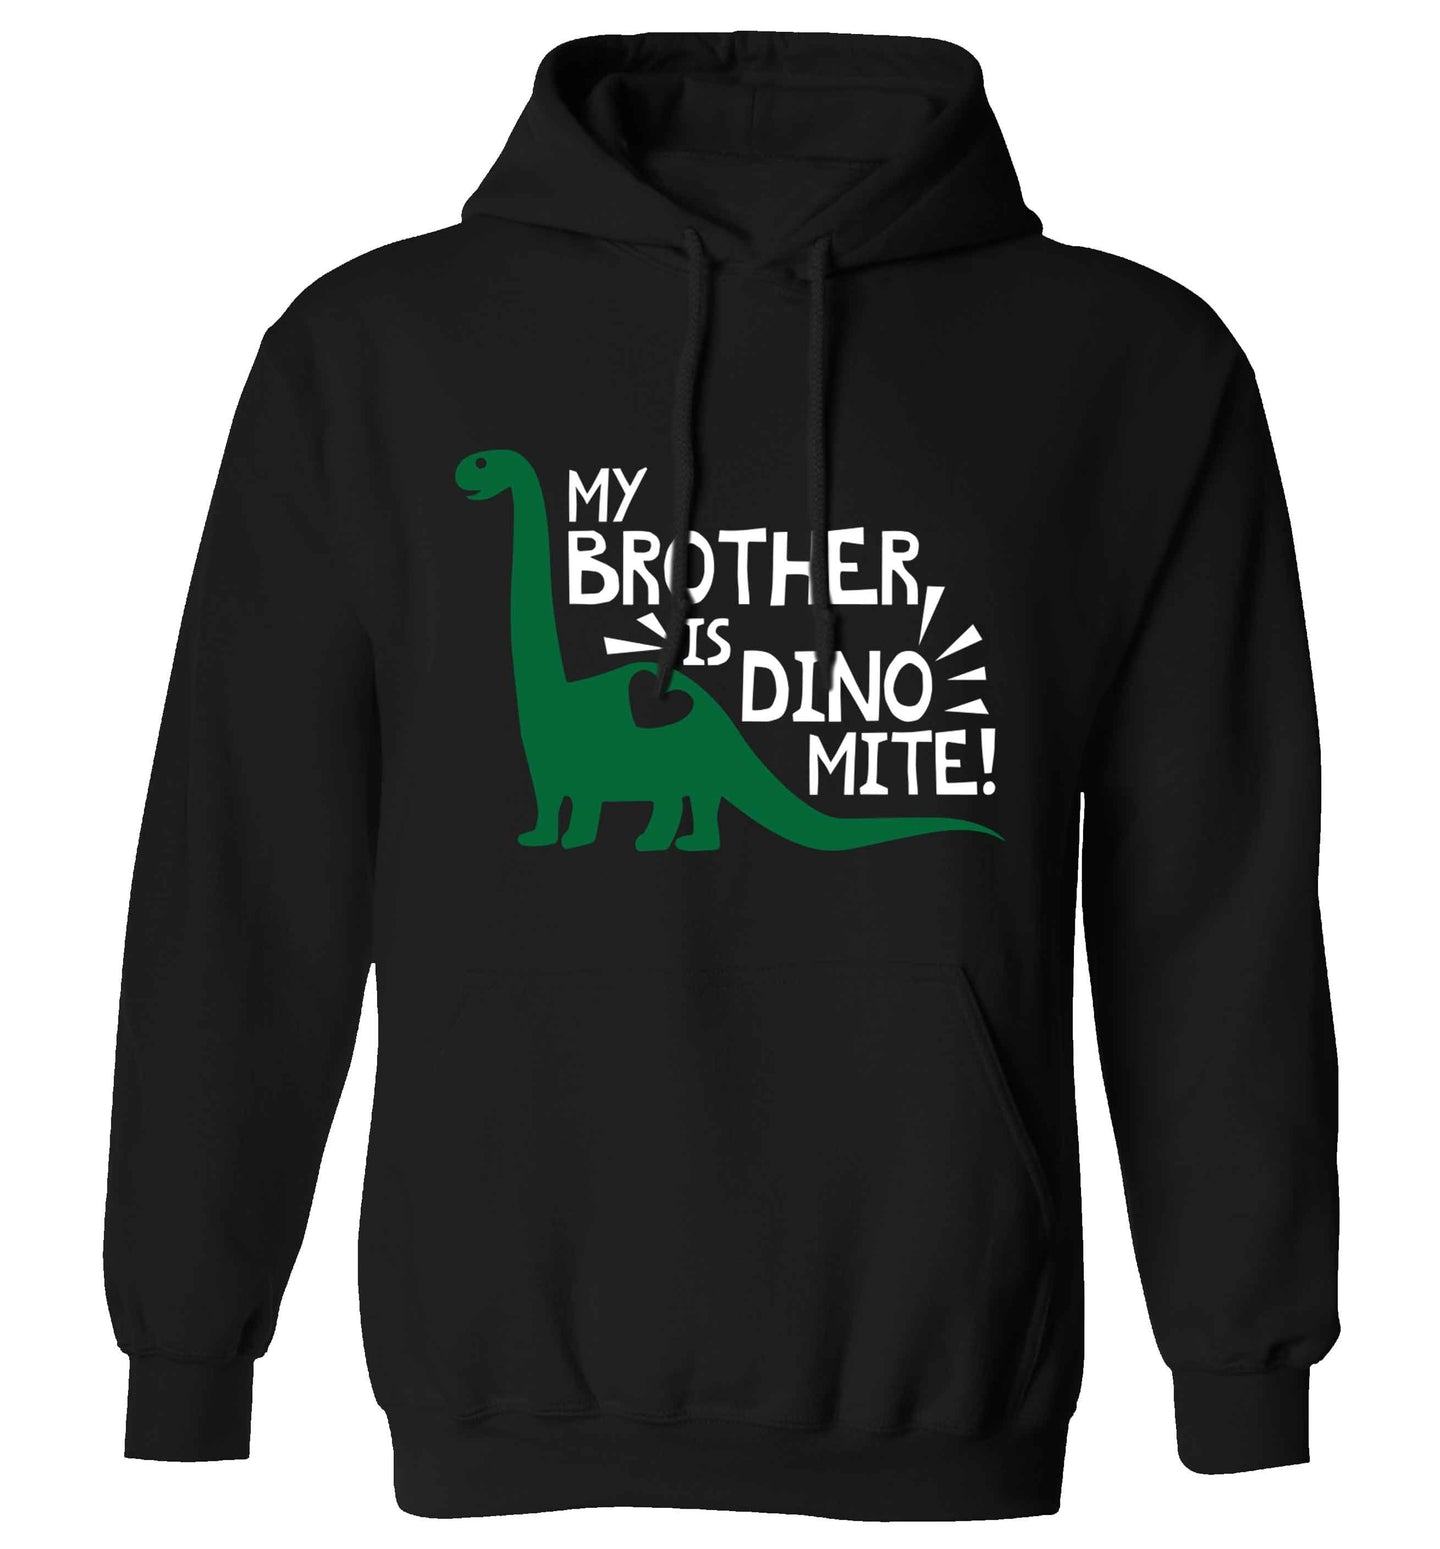 My brother is dinomite! adults unisex black hoodie 2XL